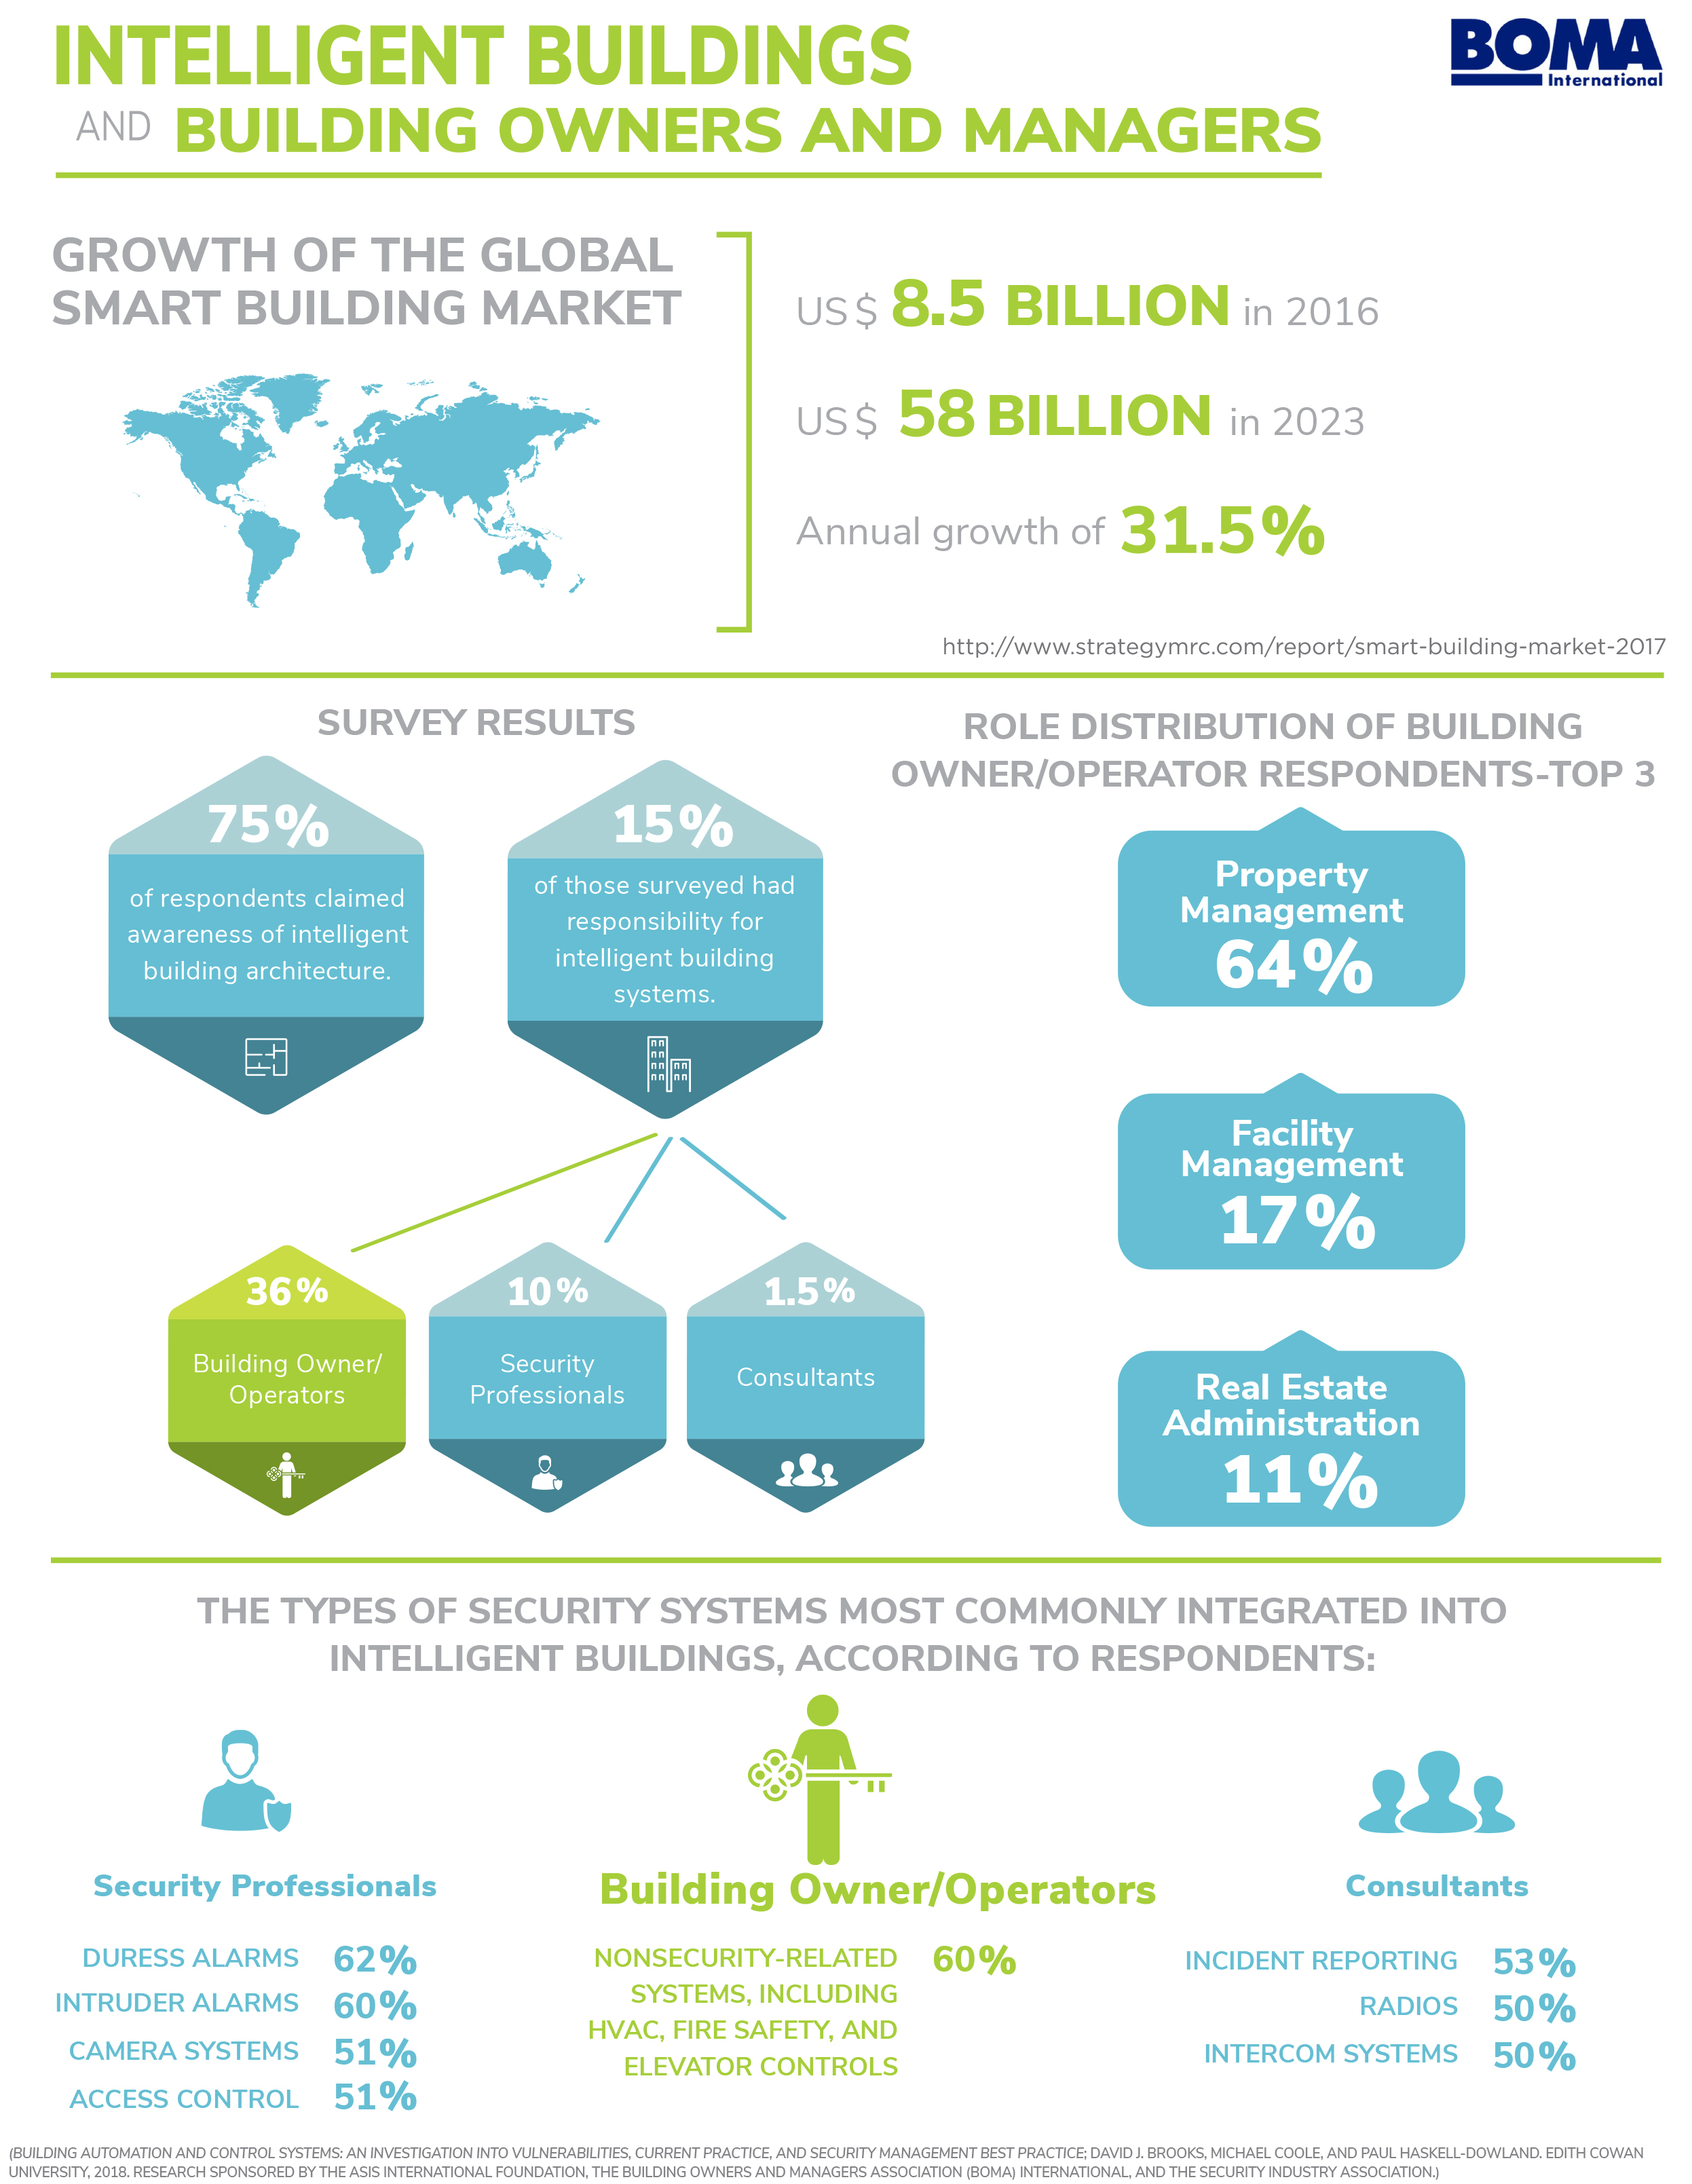 BOMA infographic on intelligent building security